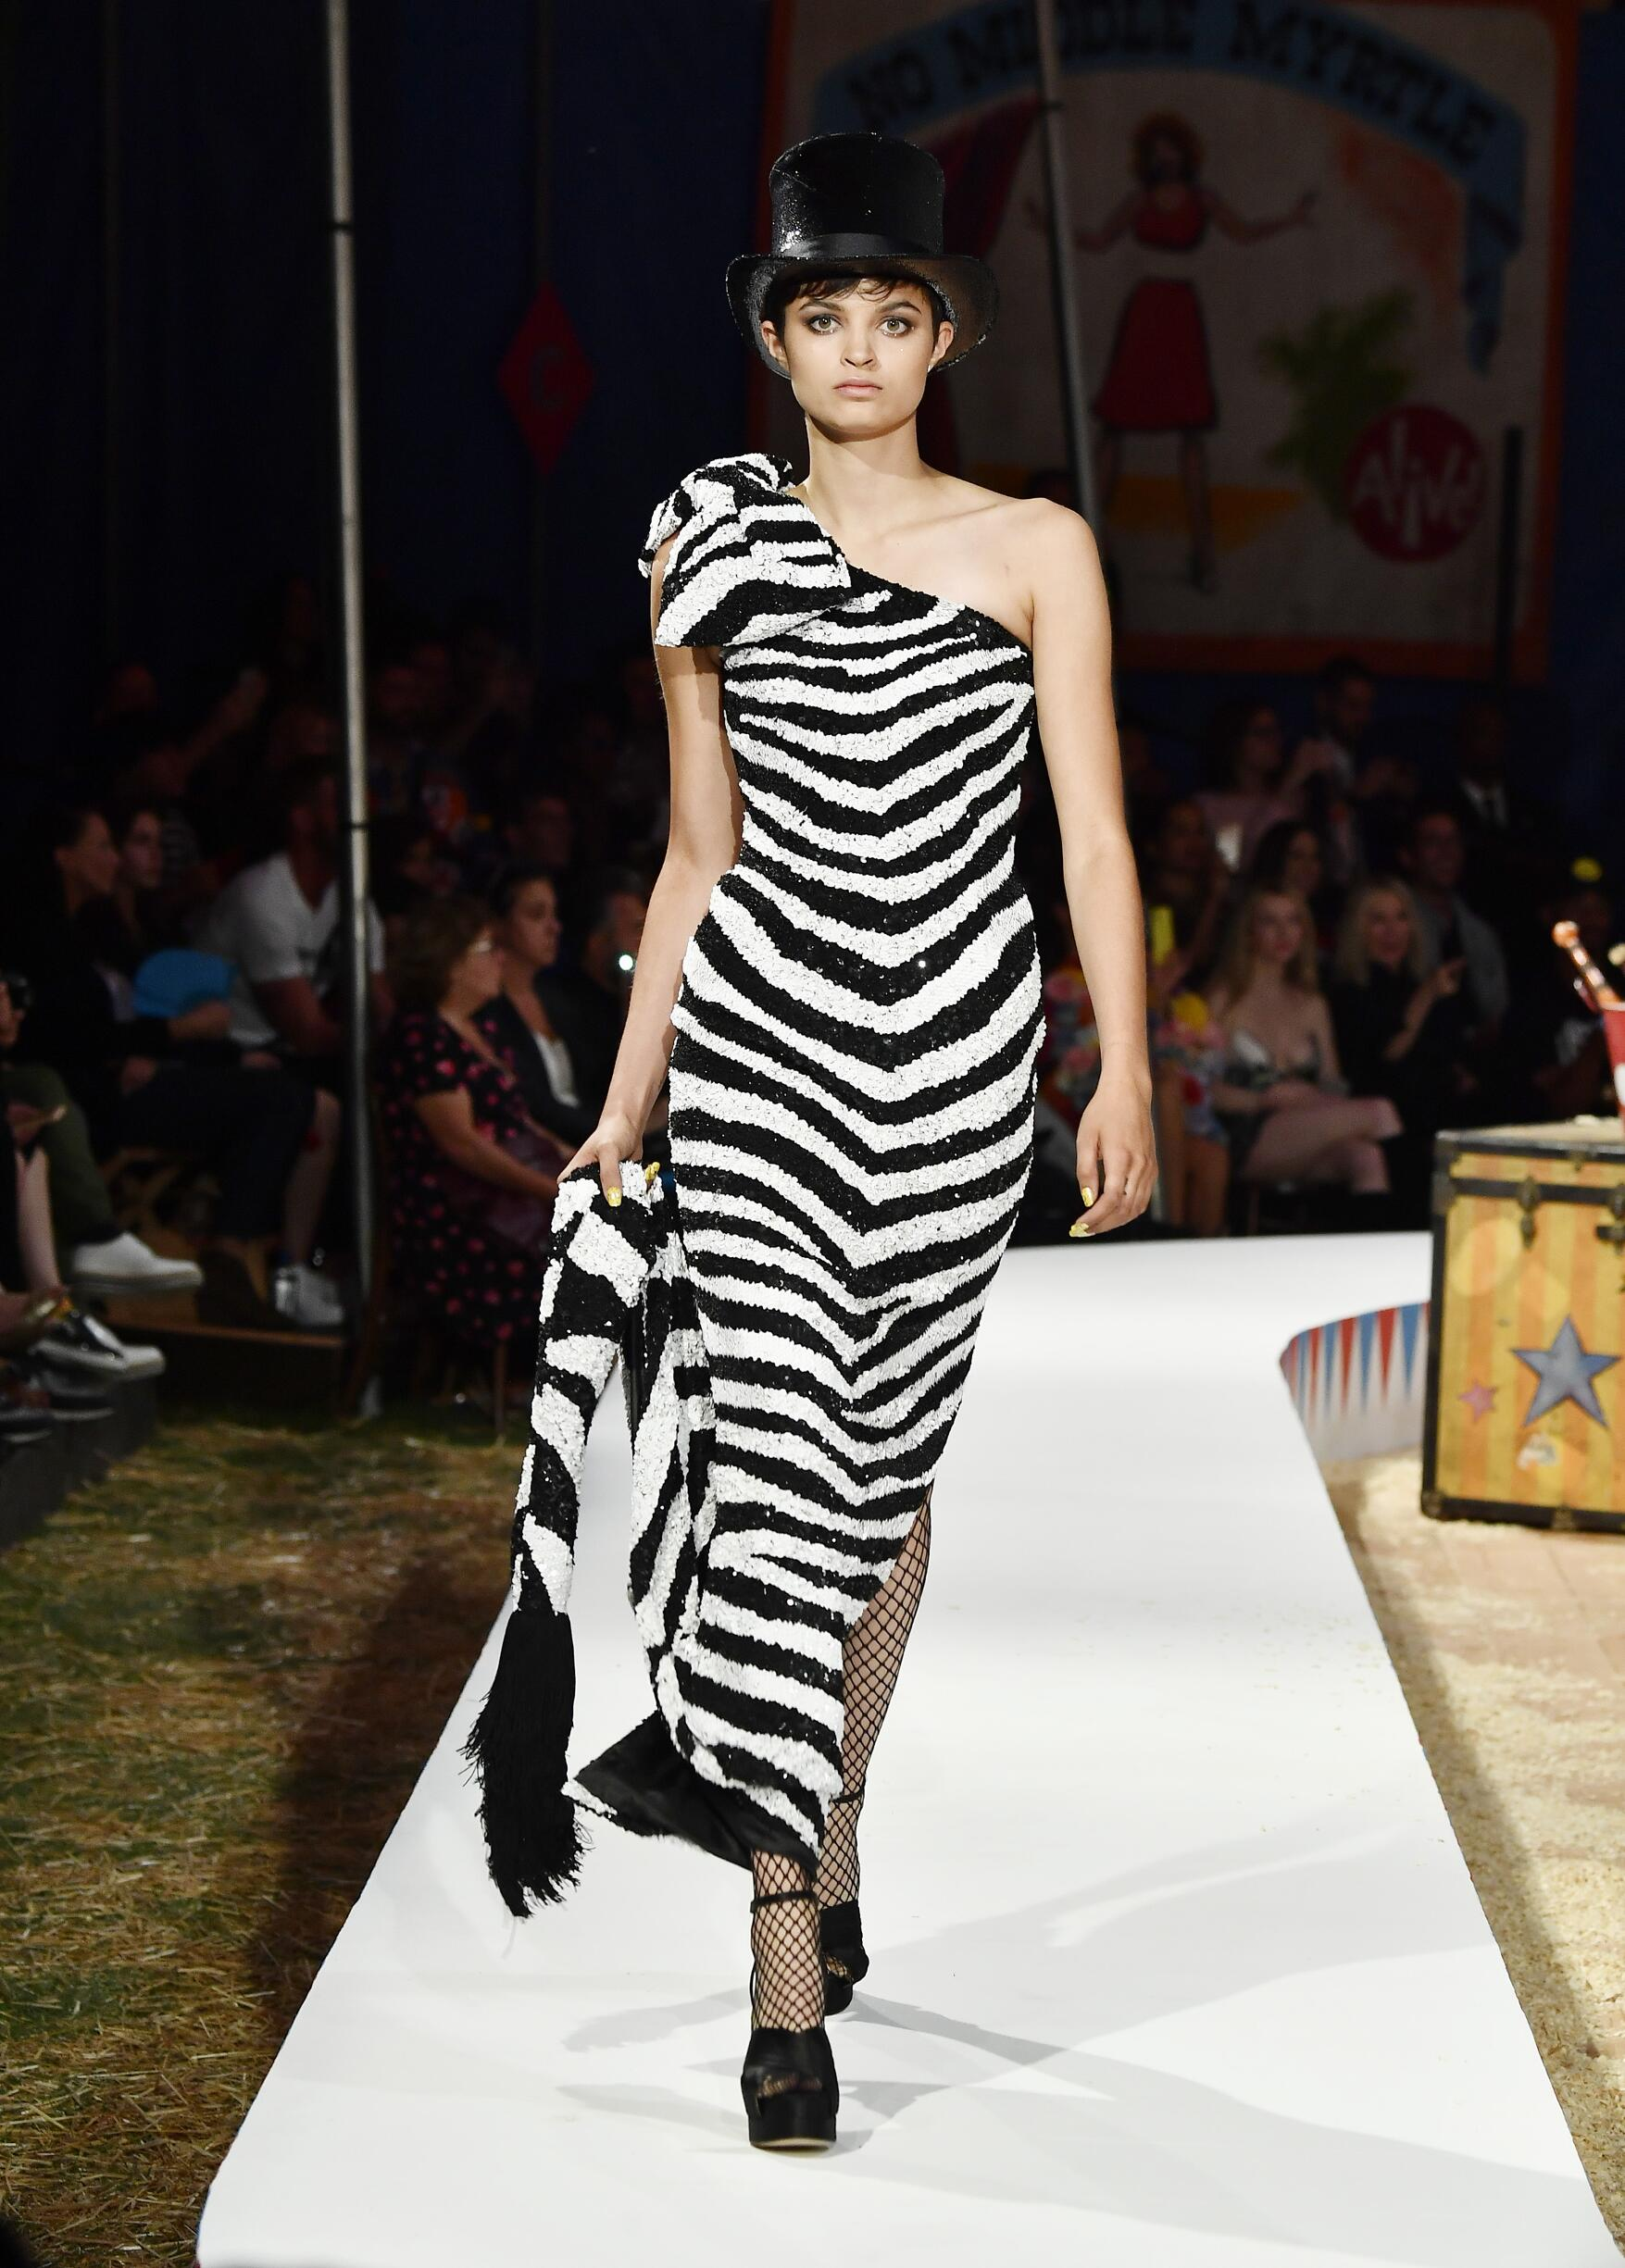 Moschino Spring Summer 2019 Menswear and Women's Resort Collection Look 15 Los Angeles